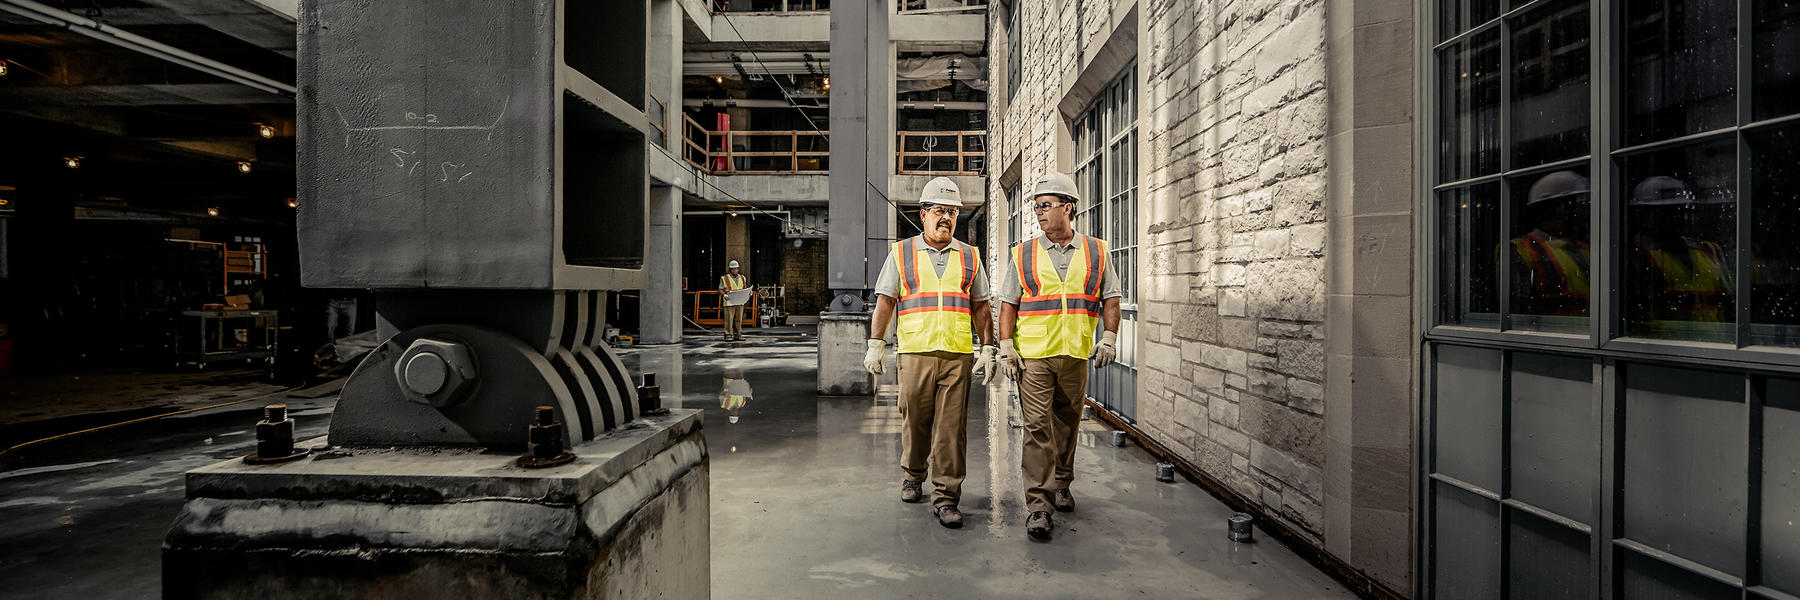 4 Construct Workers Walking